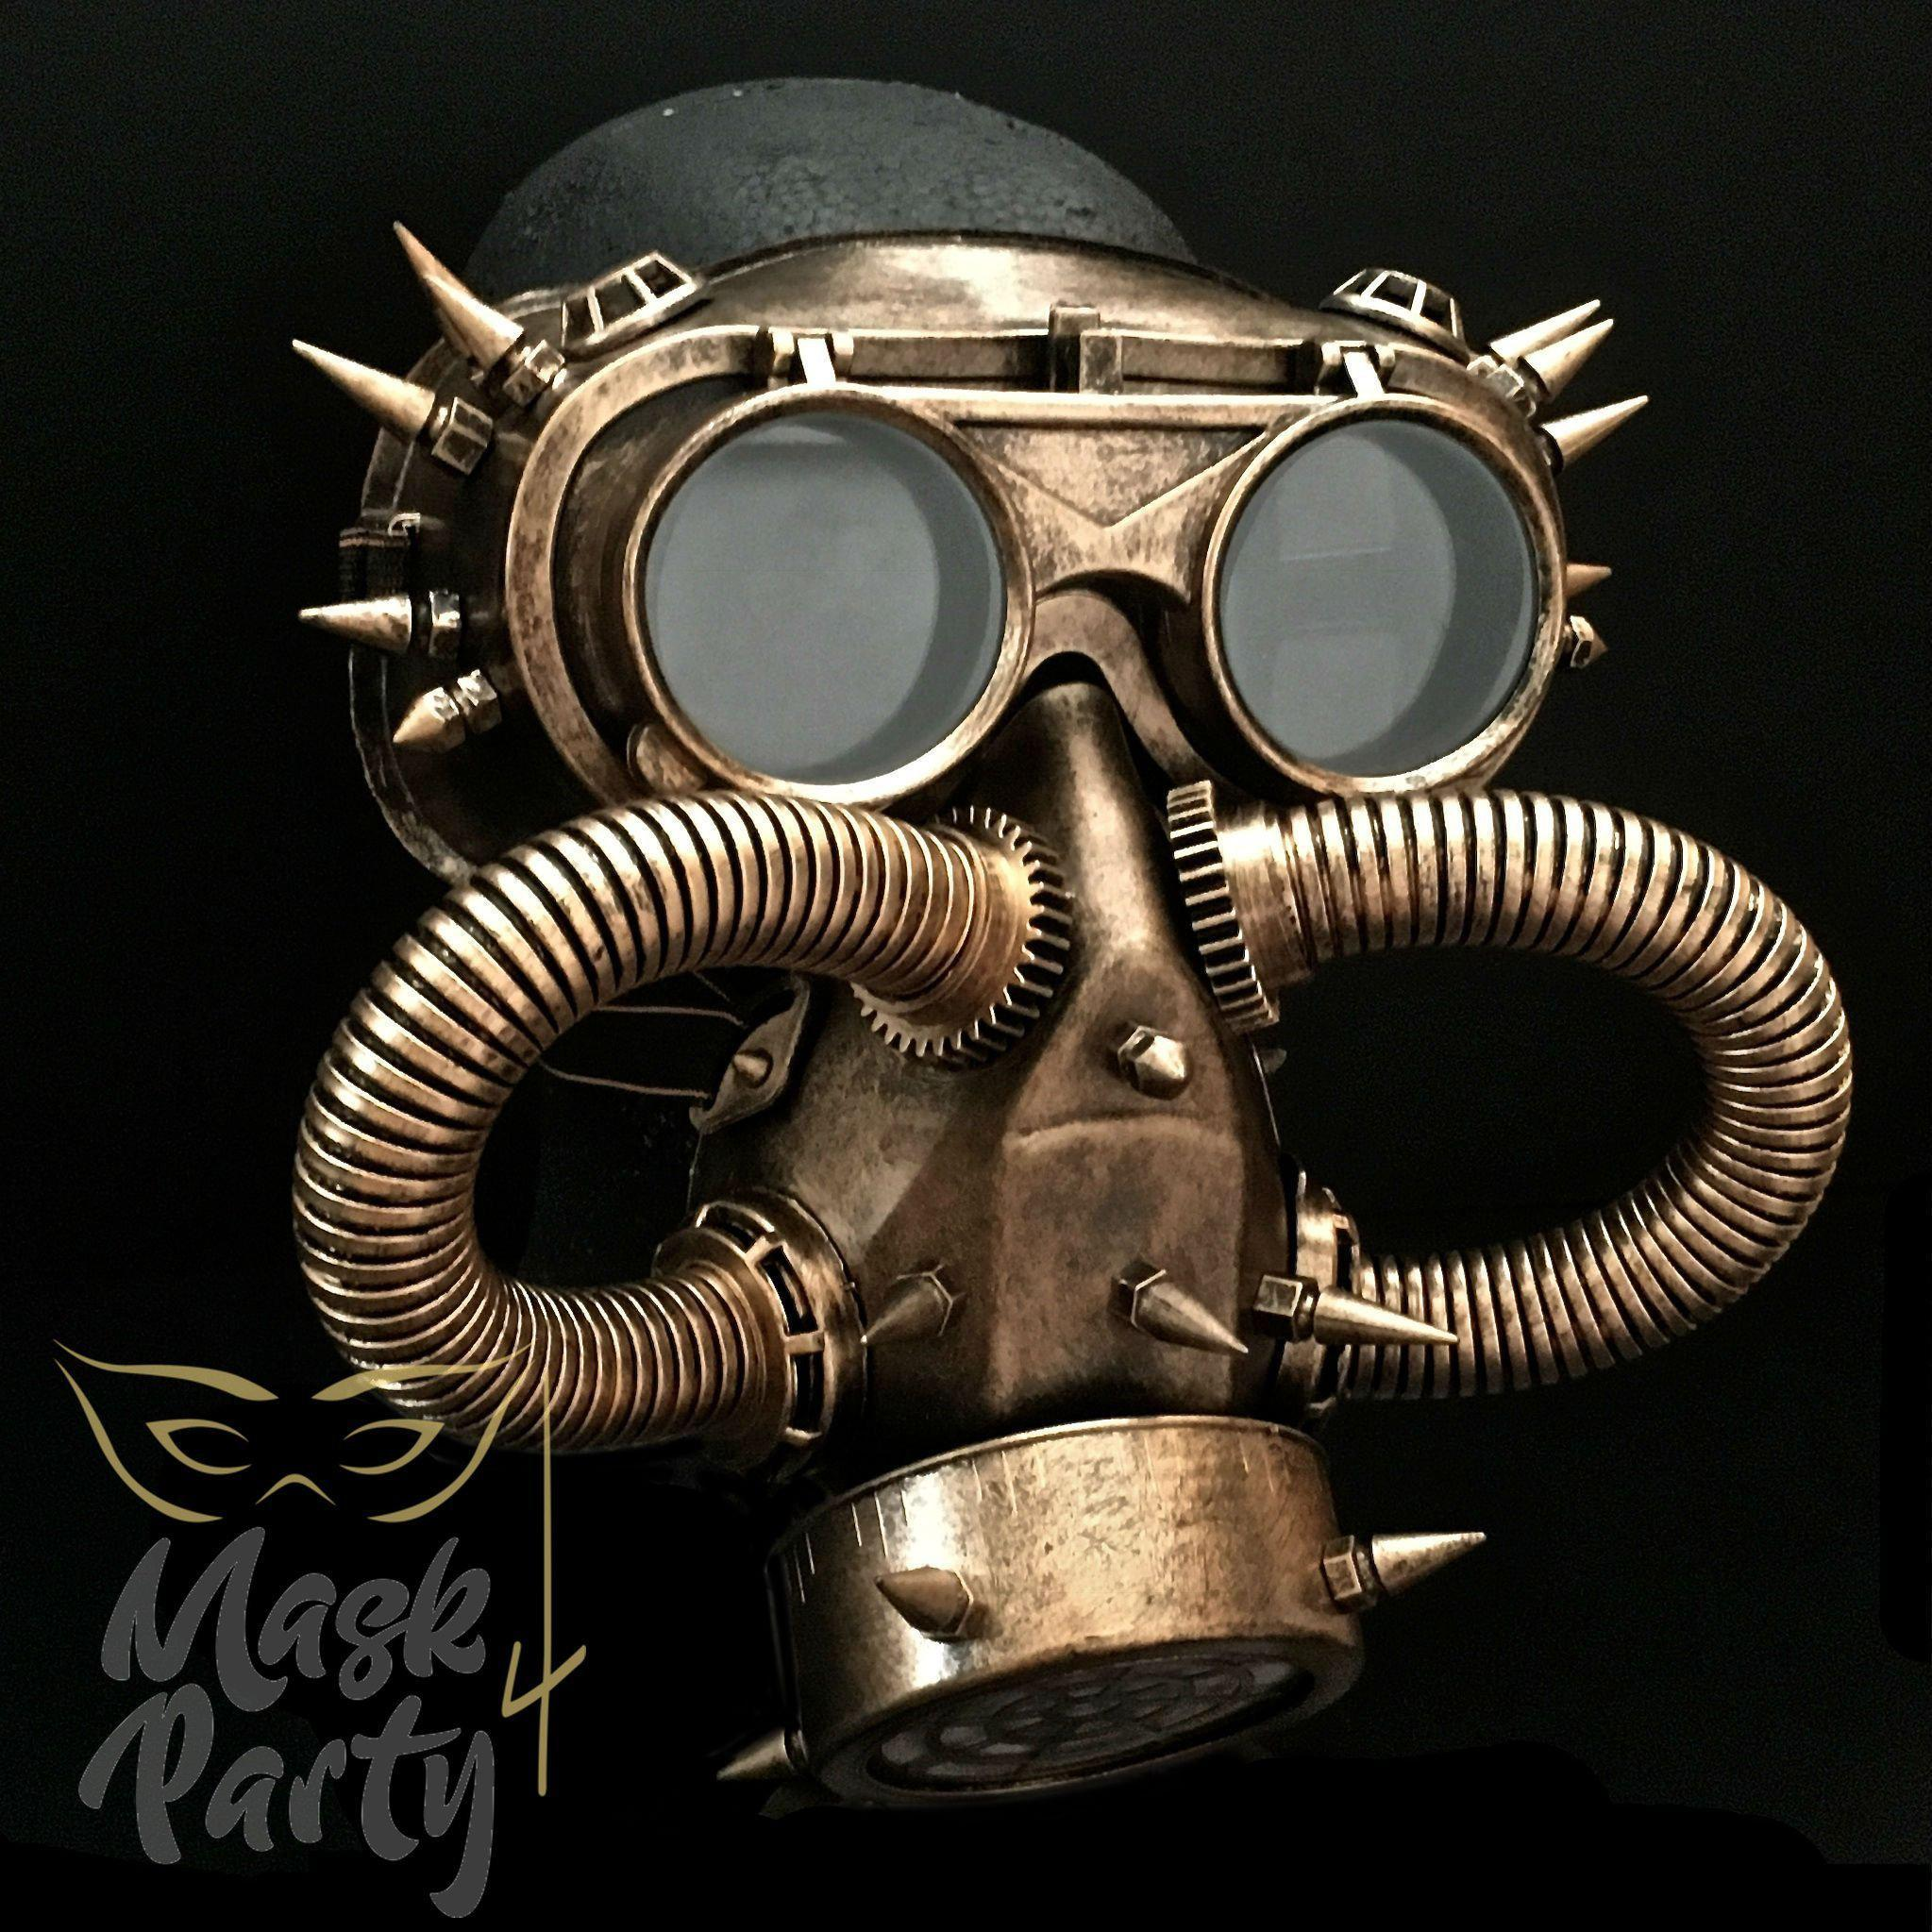 Steampunk Mask - Rivet Flip-Up Goggles & Gas Tube - Gold/Black - Mask4Party